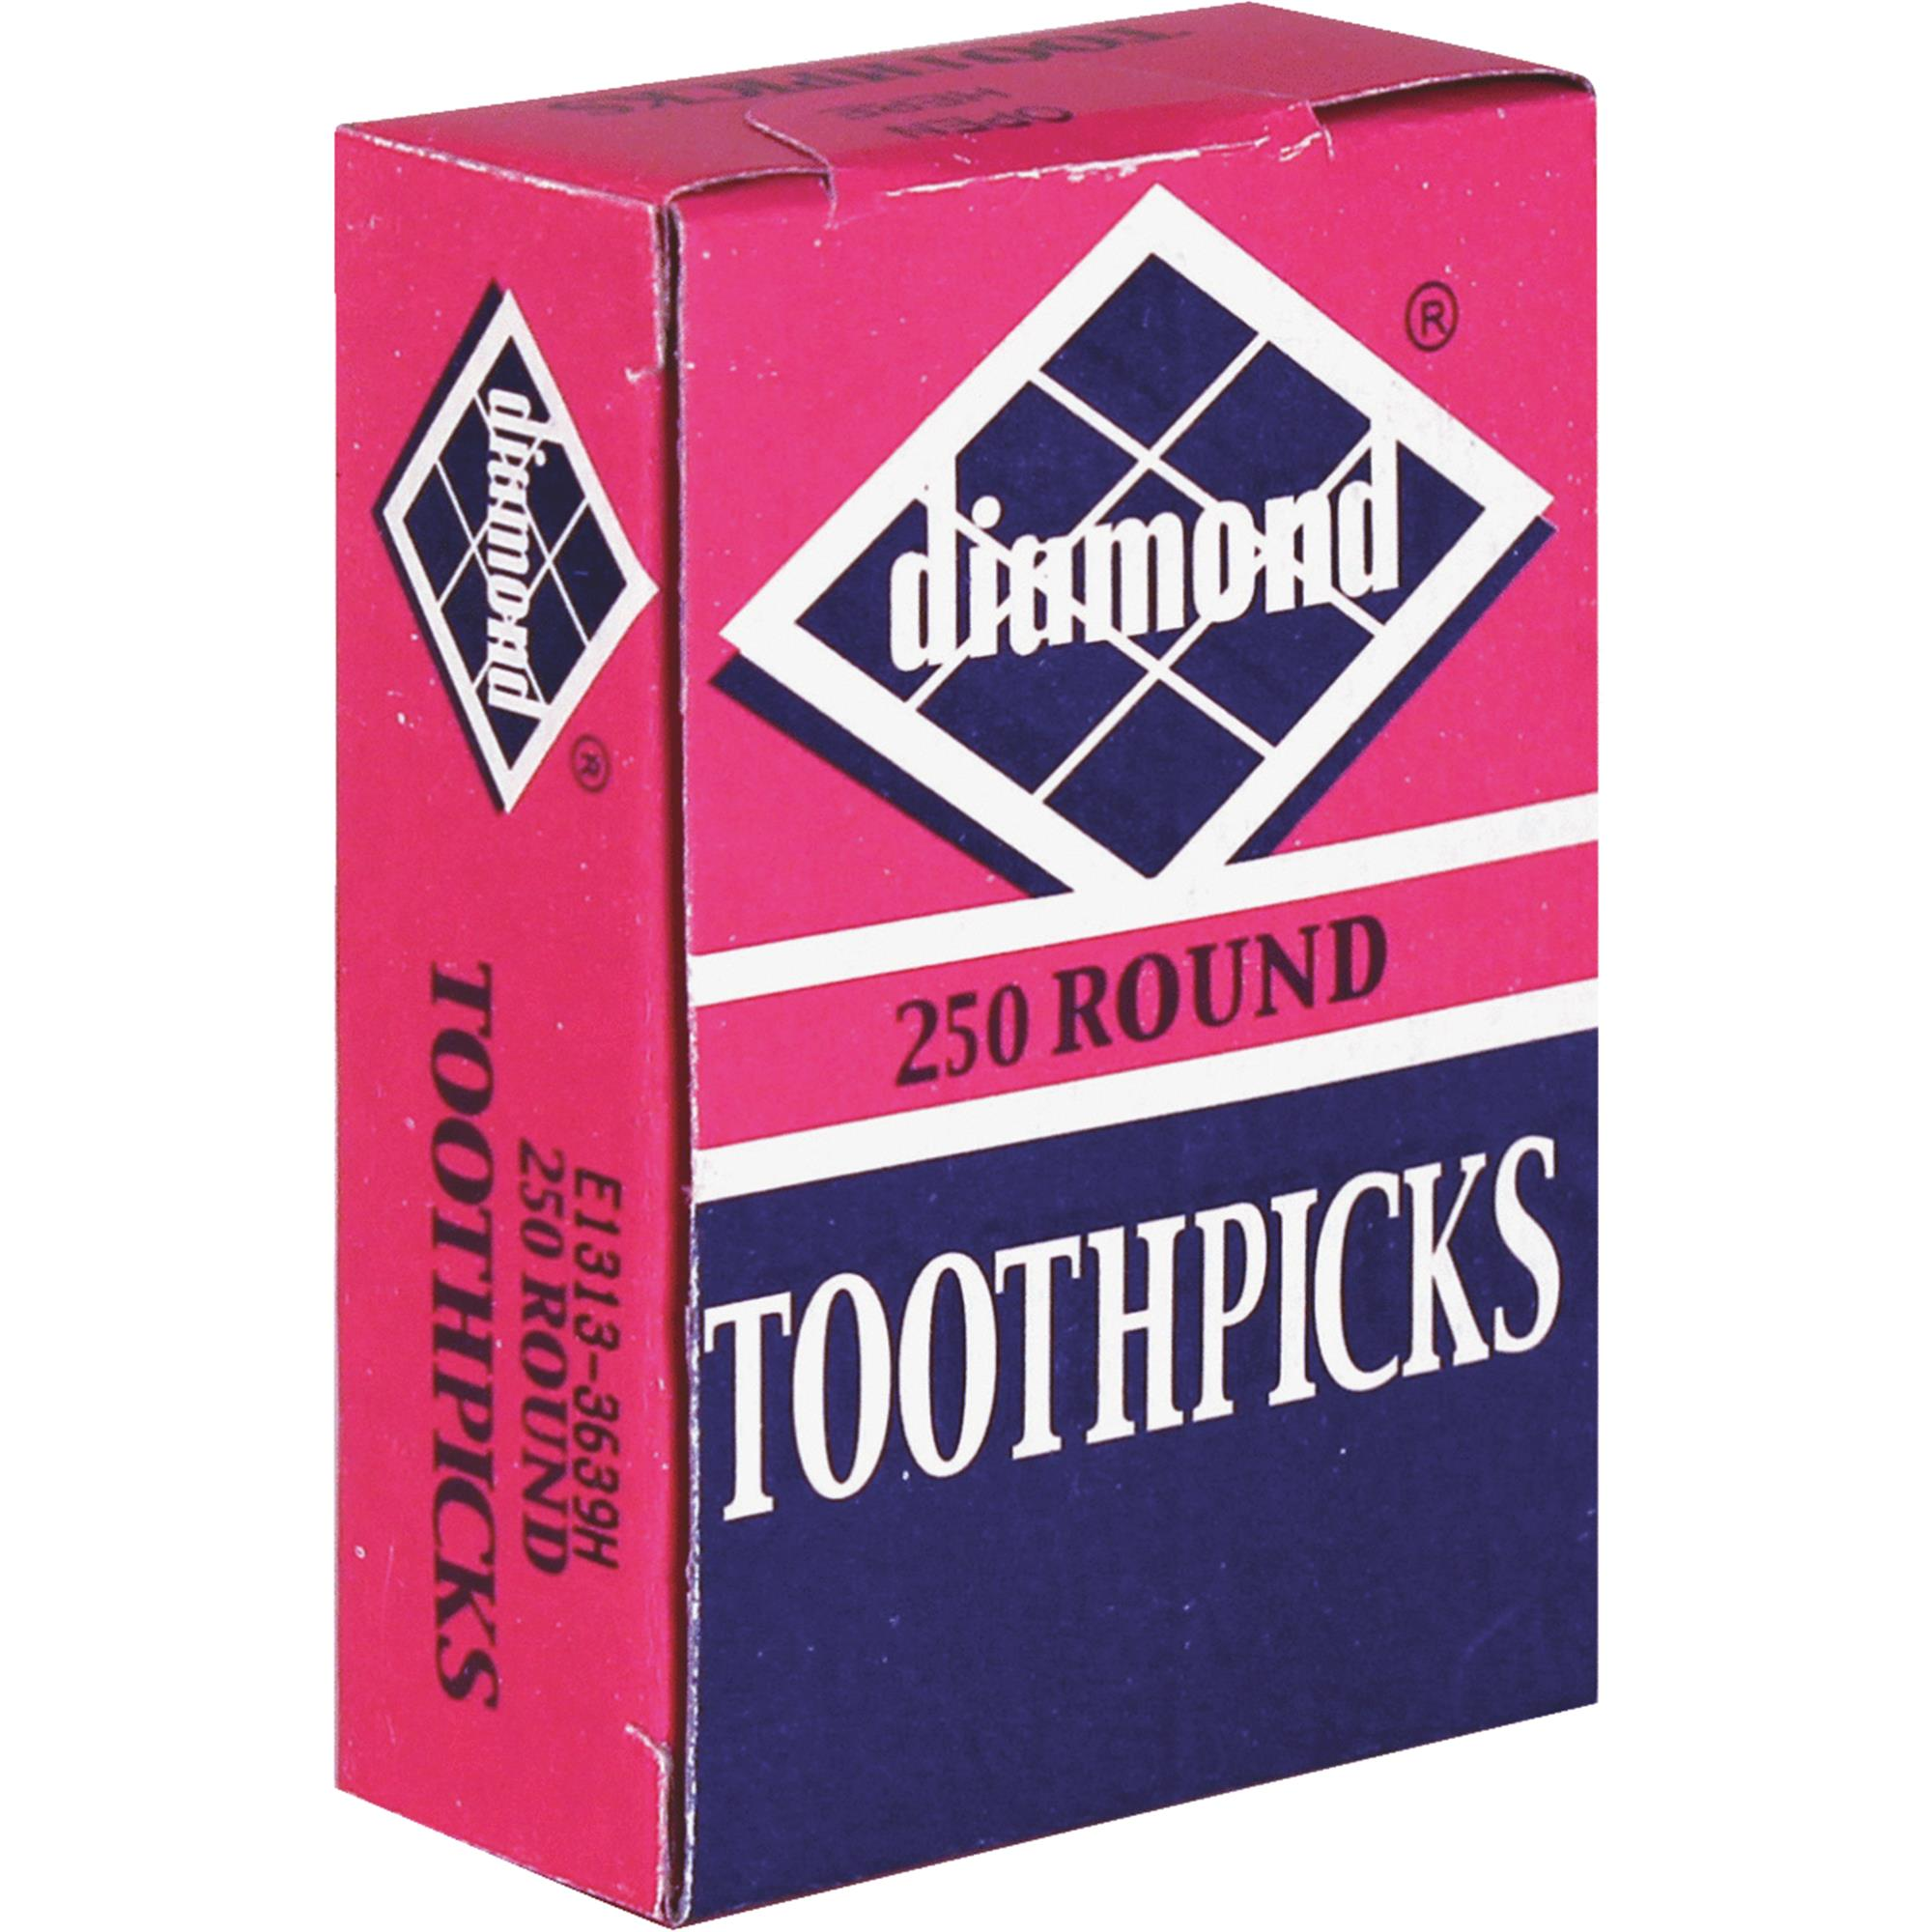 Diamond Round Wood Toothpicks, 250 Count